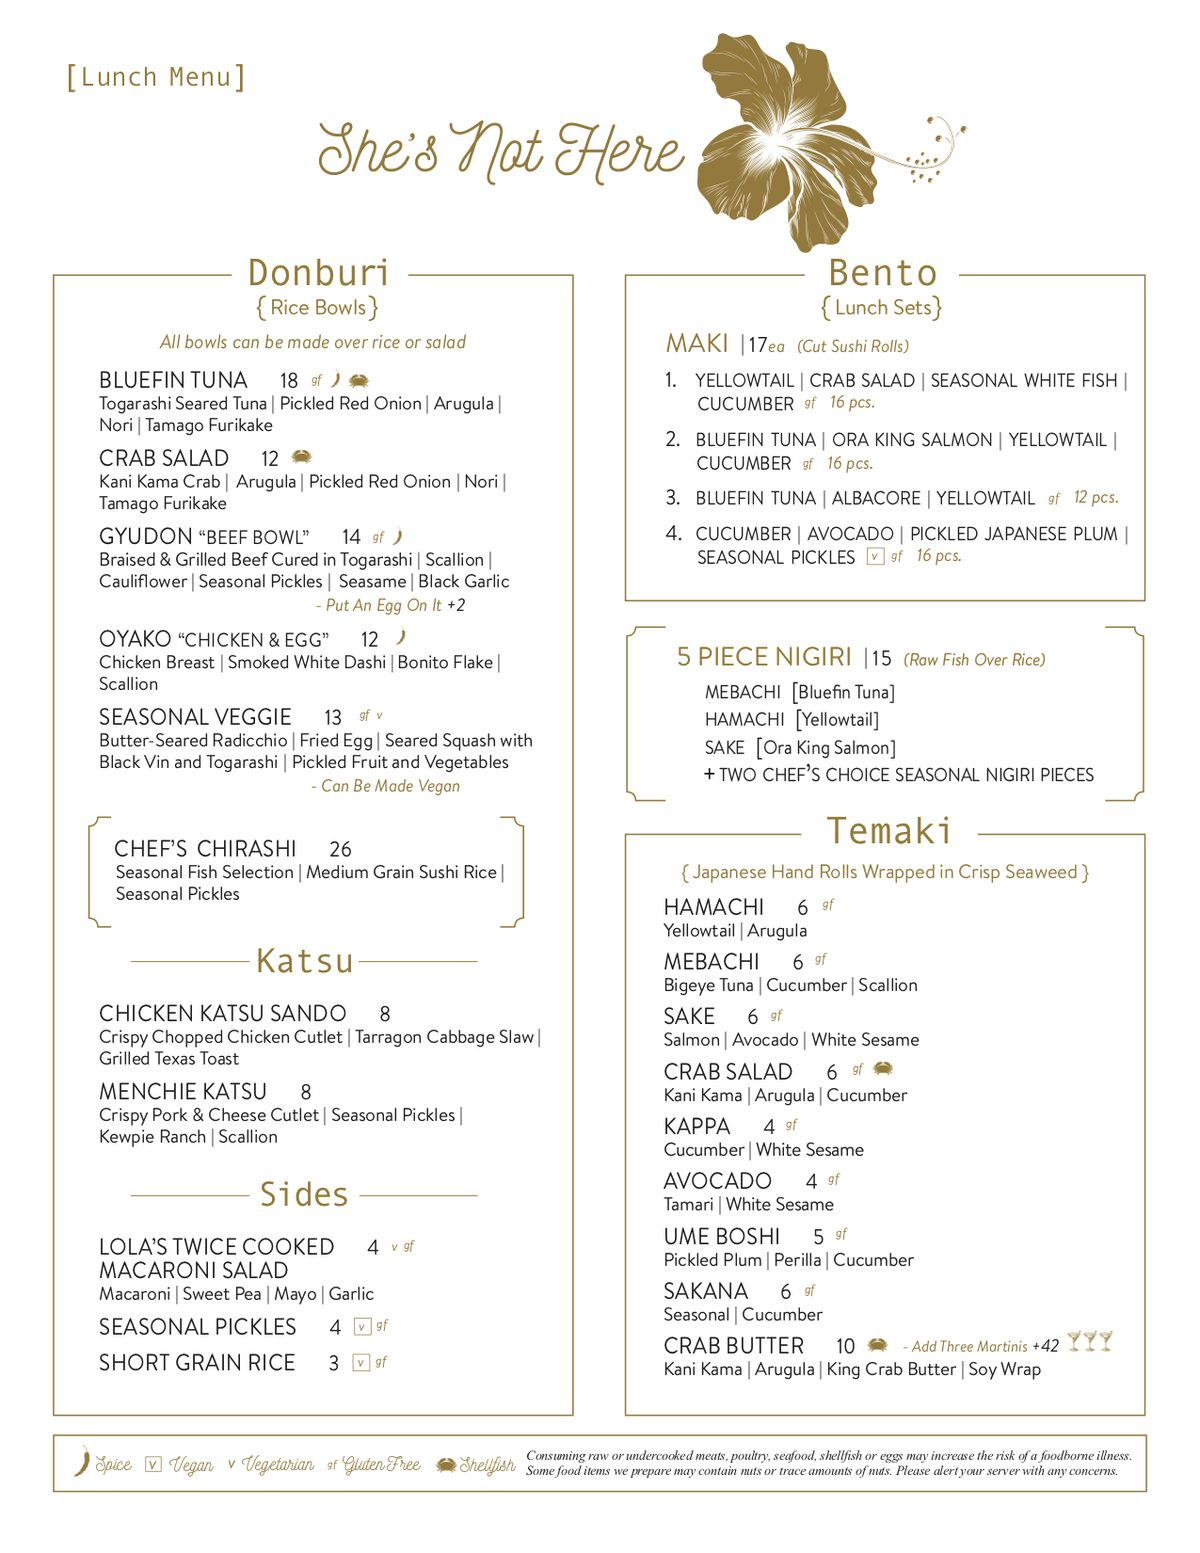 She's Not Here's lunch menu